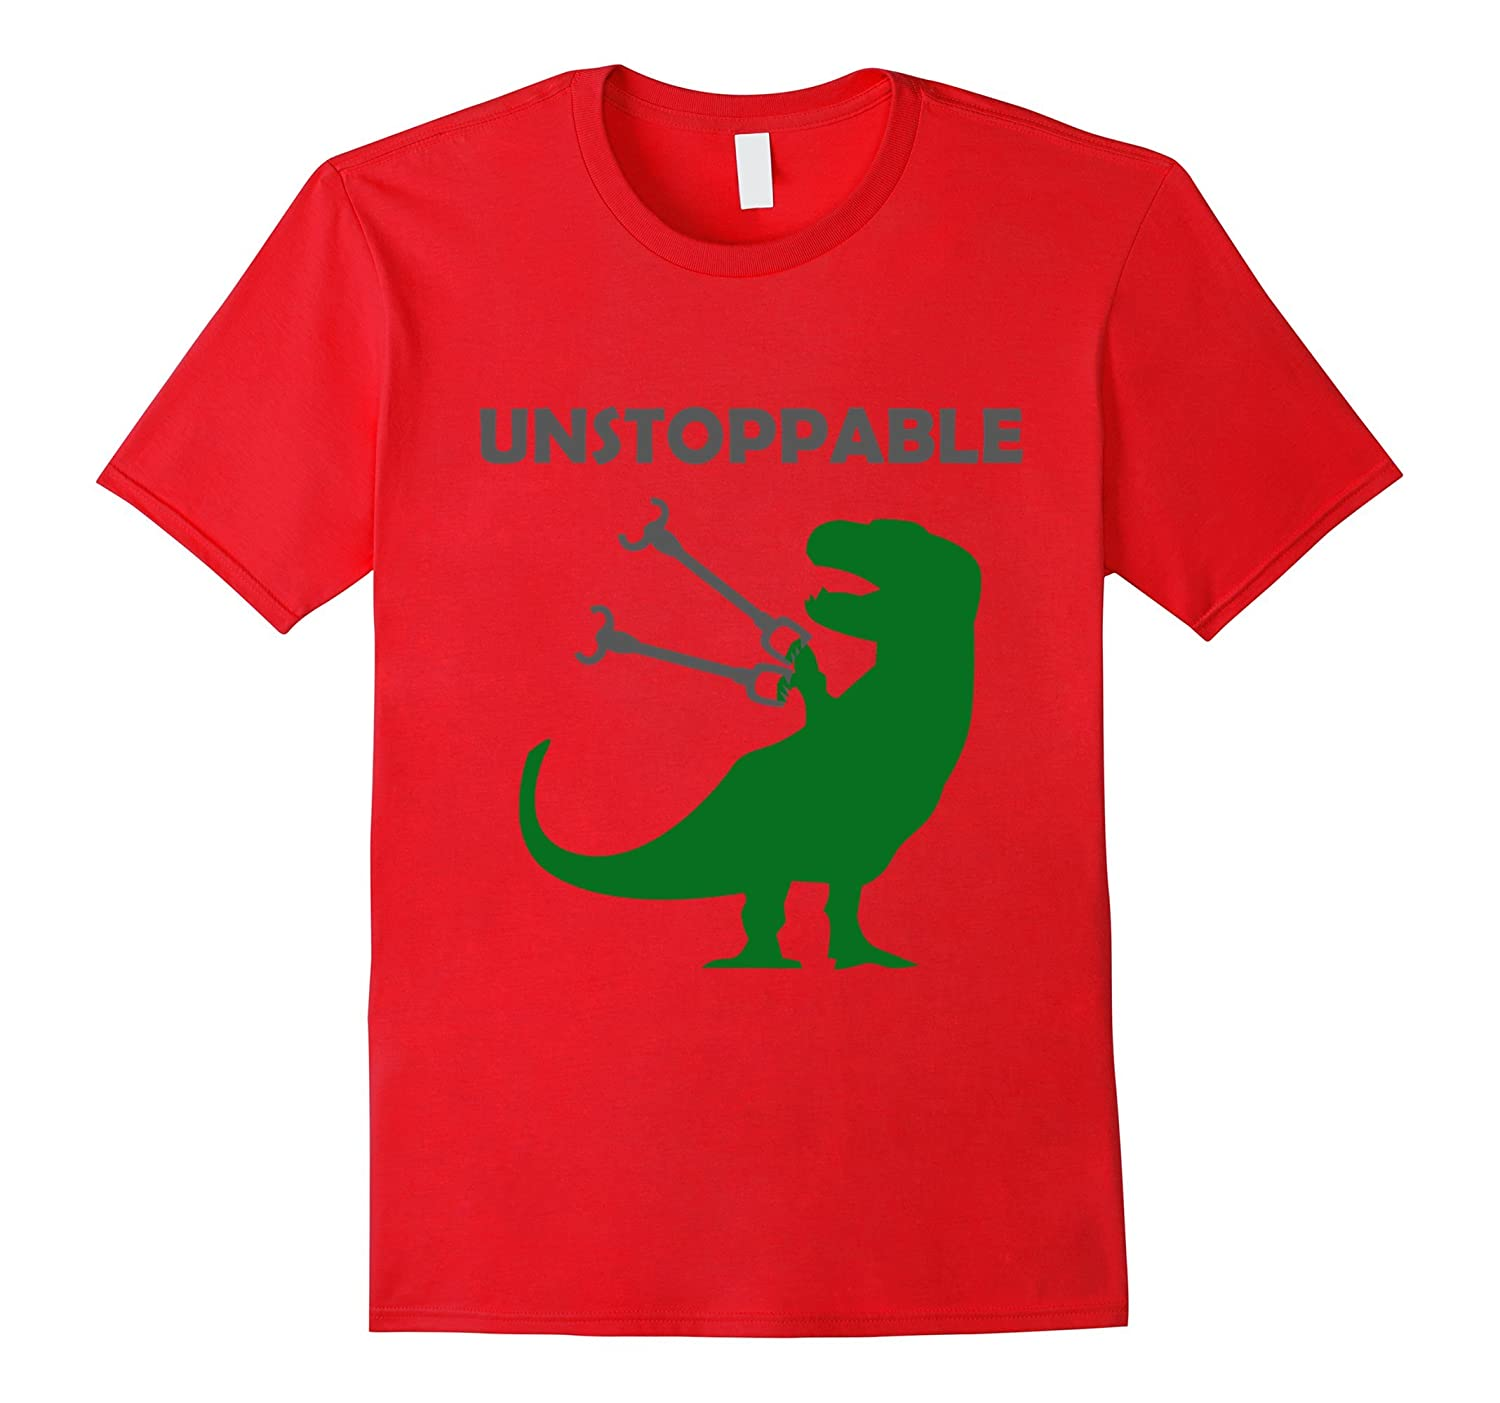 Unstoppable T-Rex T-Shirt - Tyrannosaurs Rex with Long Arms-CL